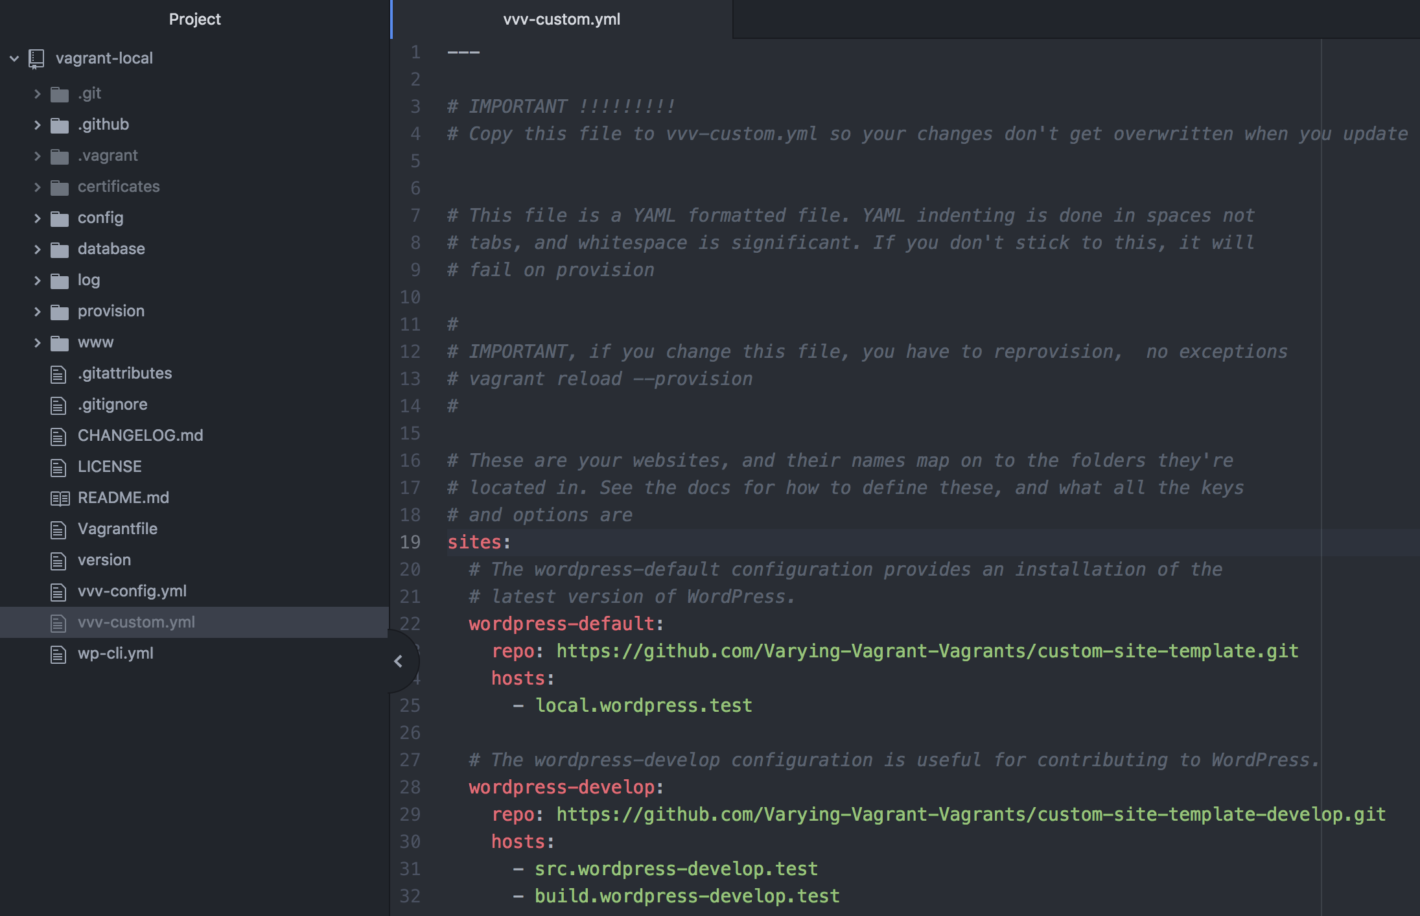 The vvv-custom.yml file within Atom.